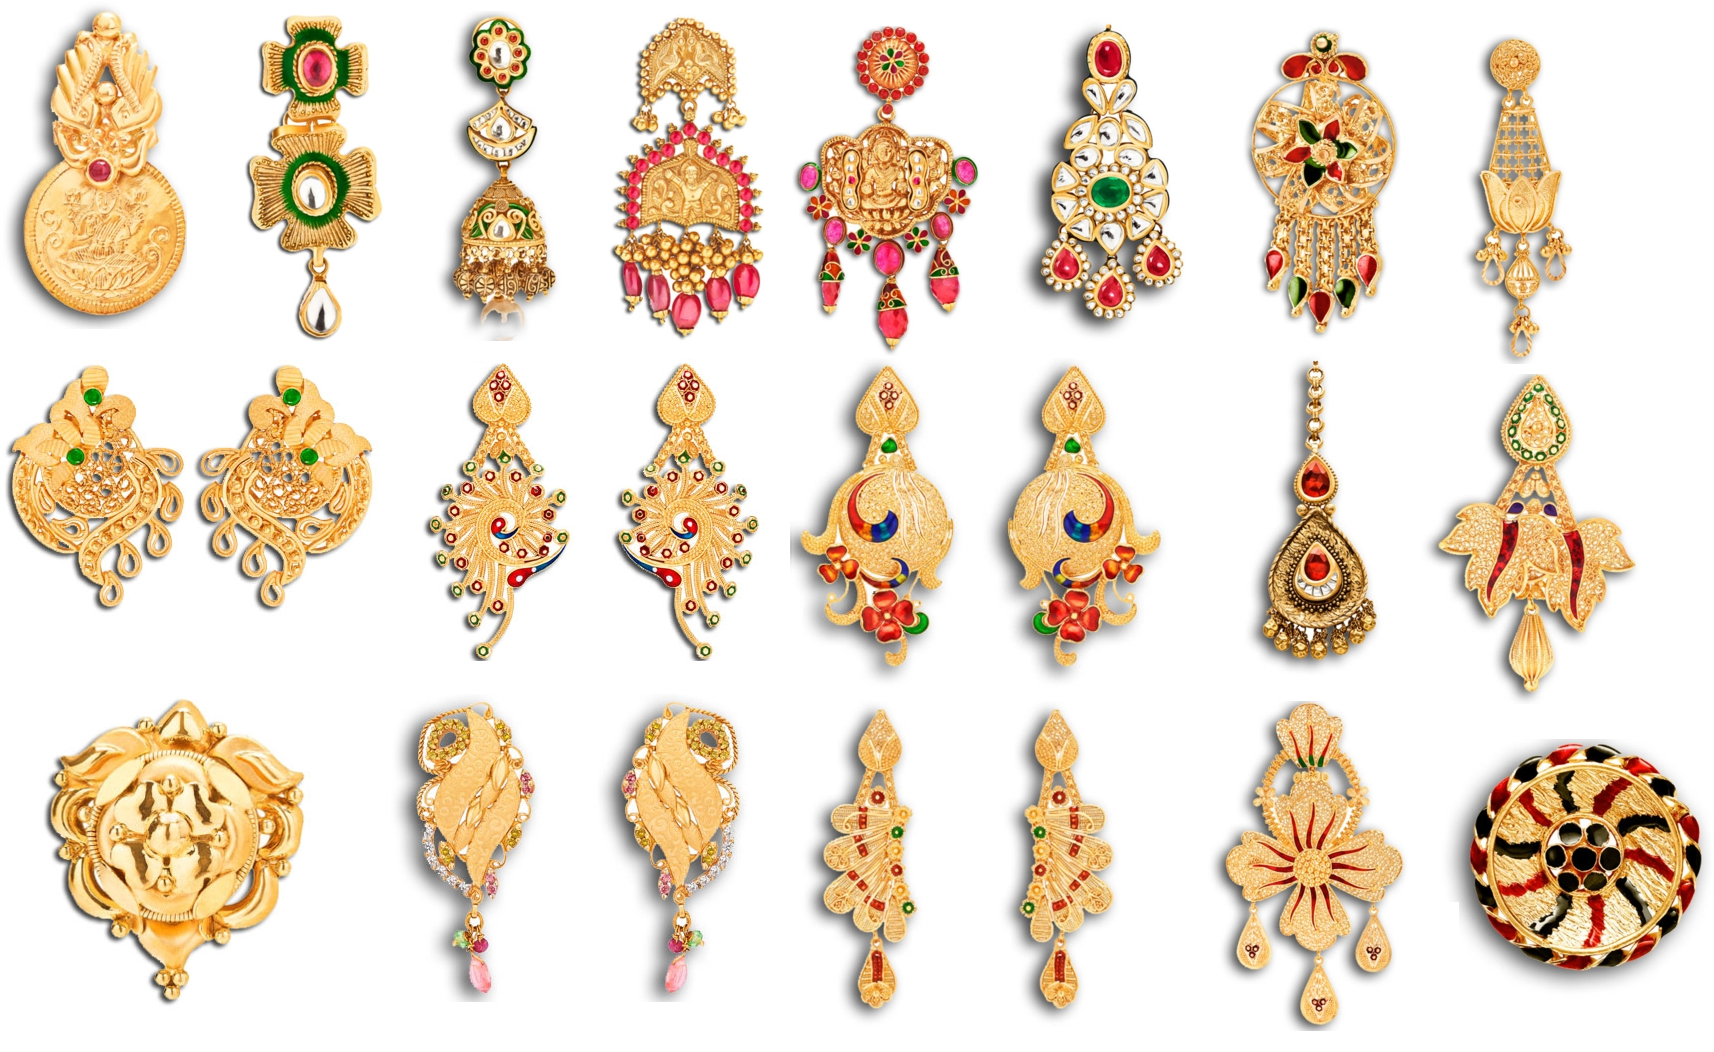 Explore your feminine side with these delicate gold earrings.